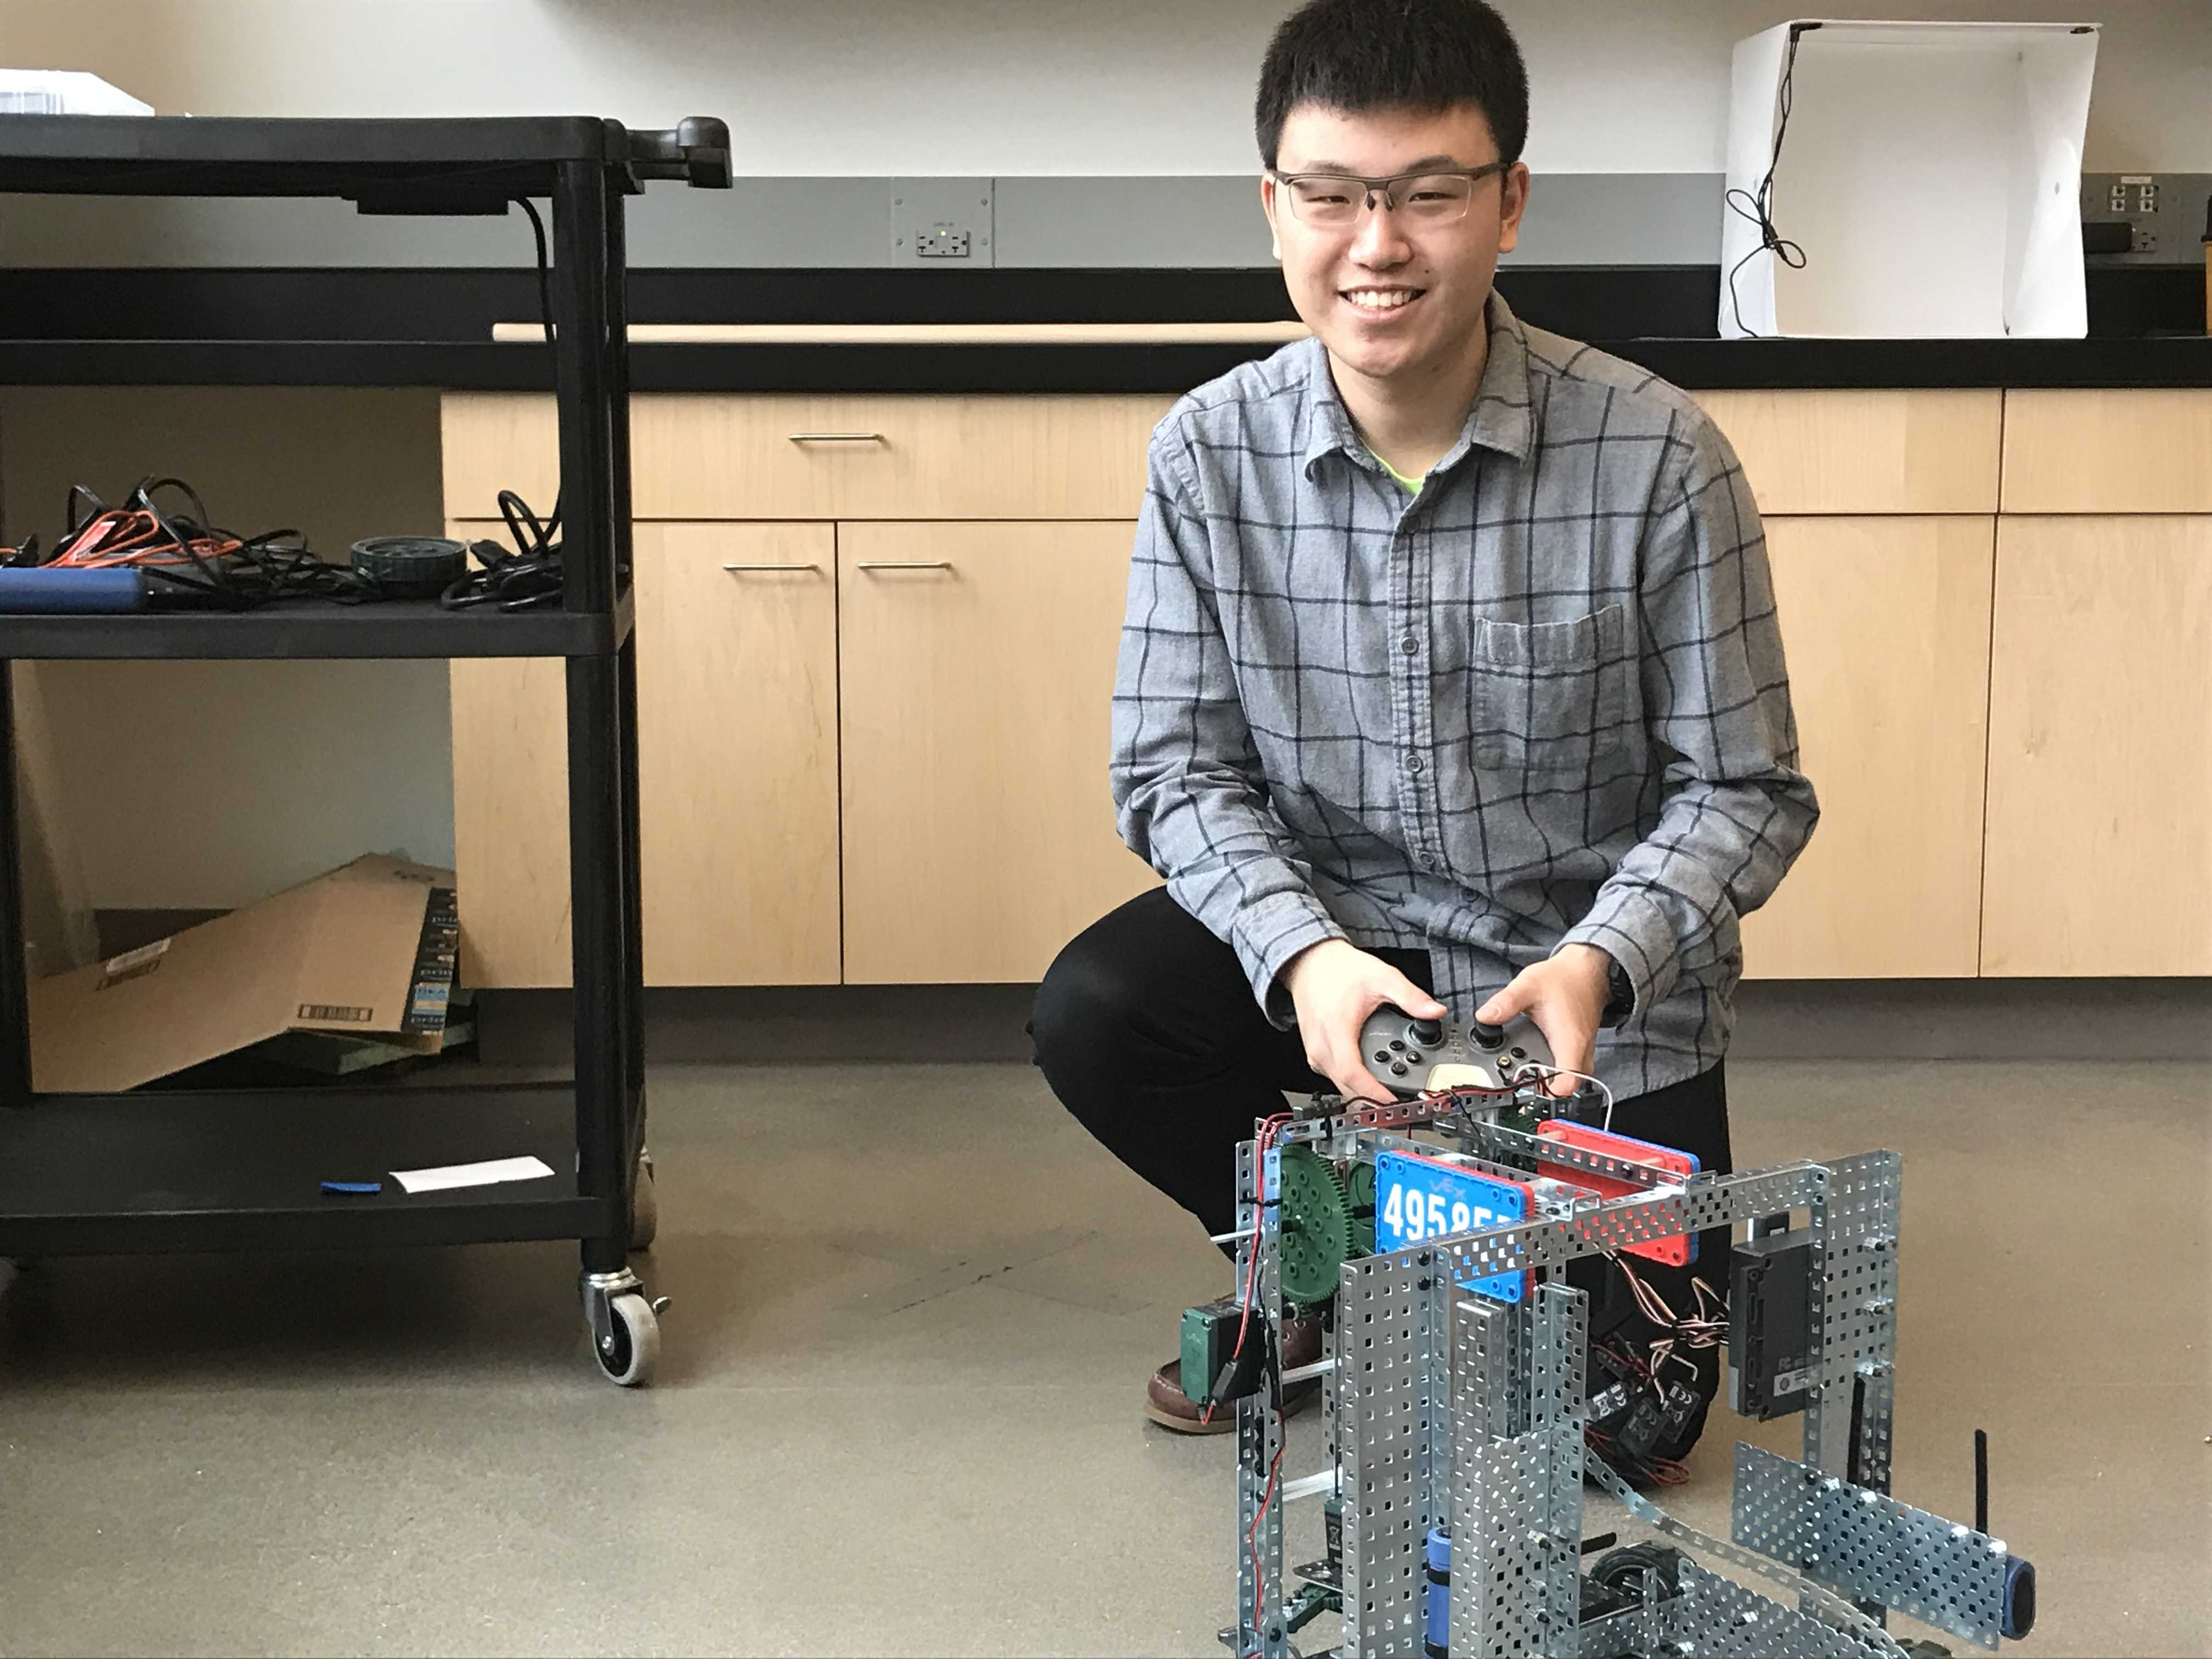 Gator Robotics leader Jeff Wu '18 poses with his machine. Photo by Michael Donahue '18.